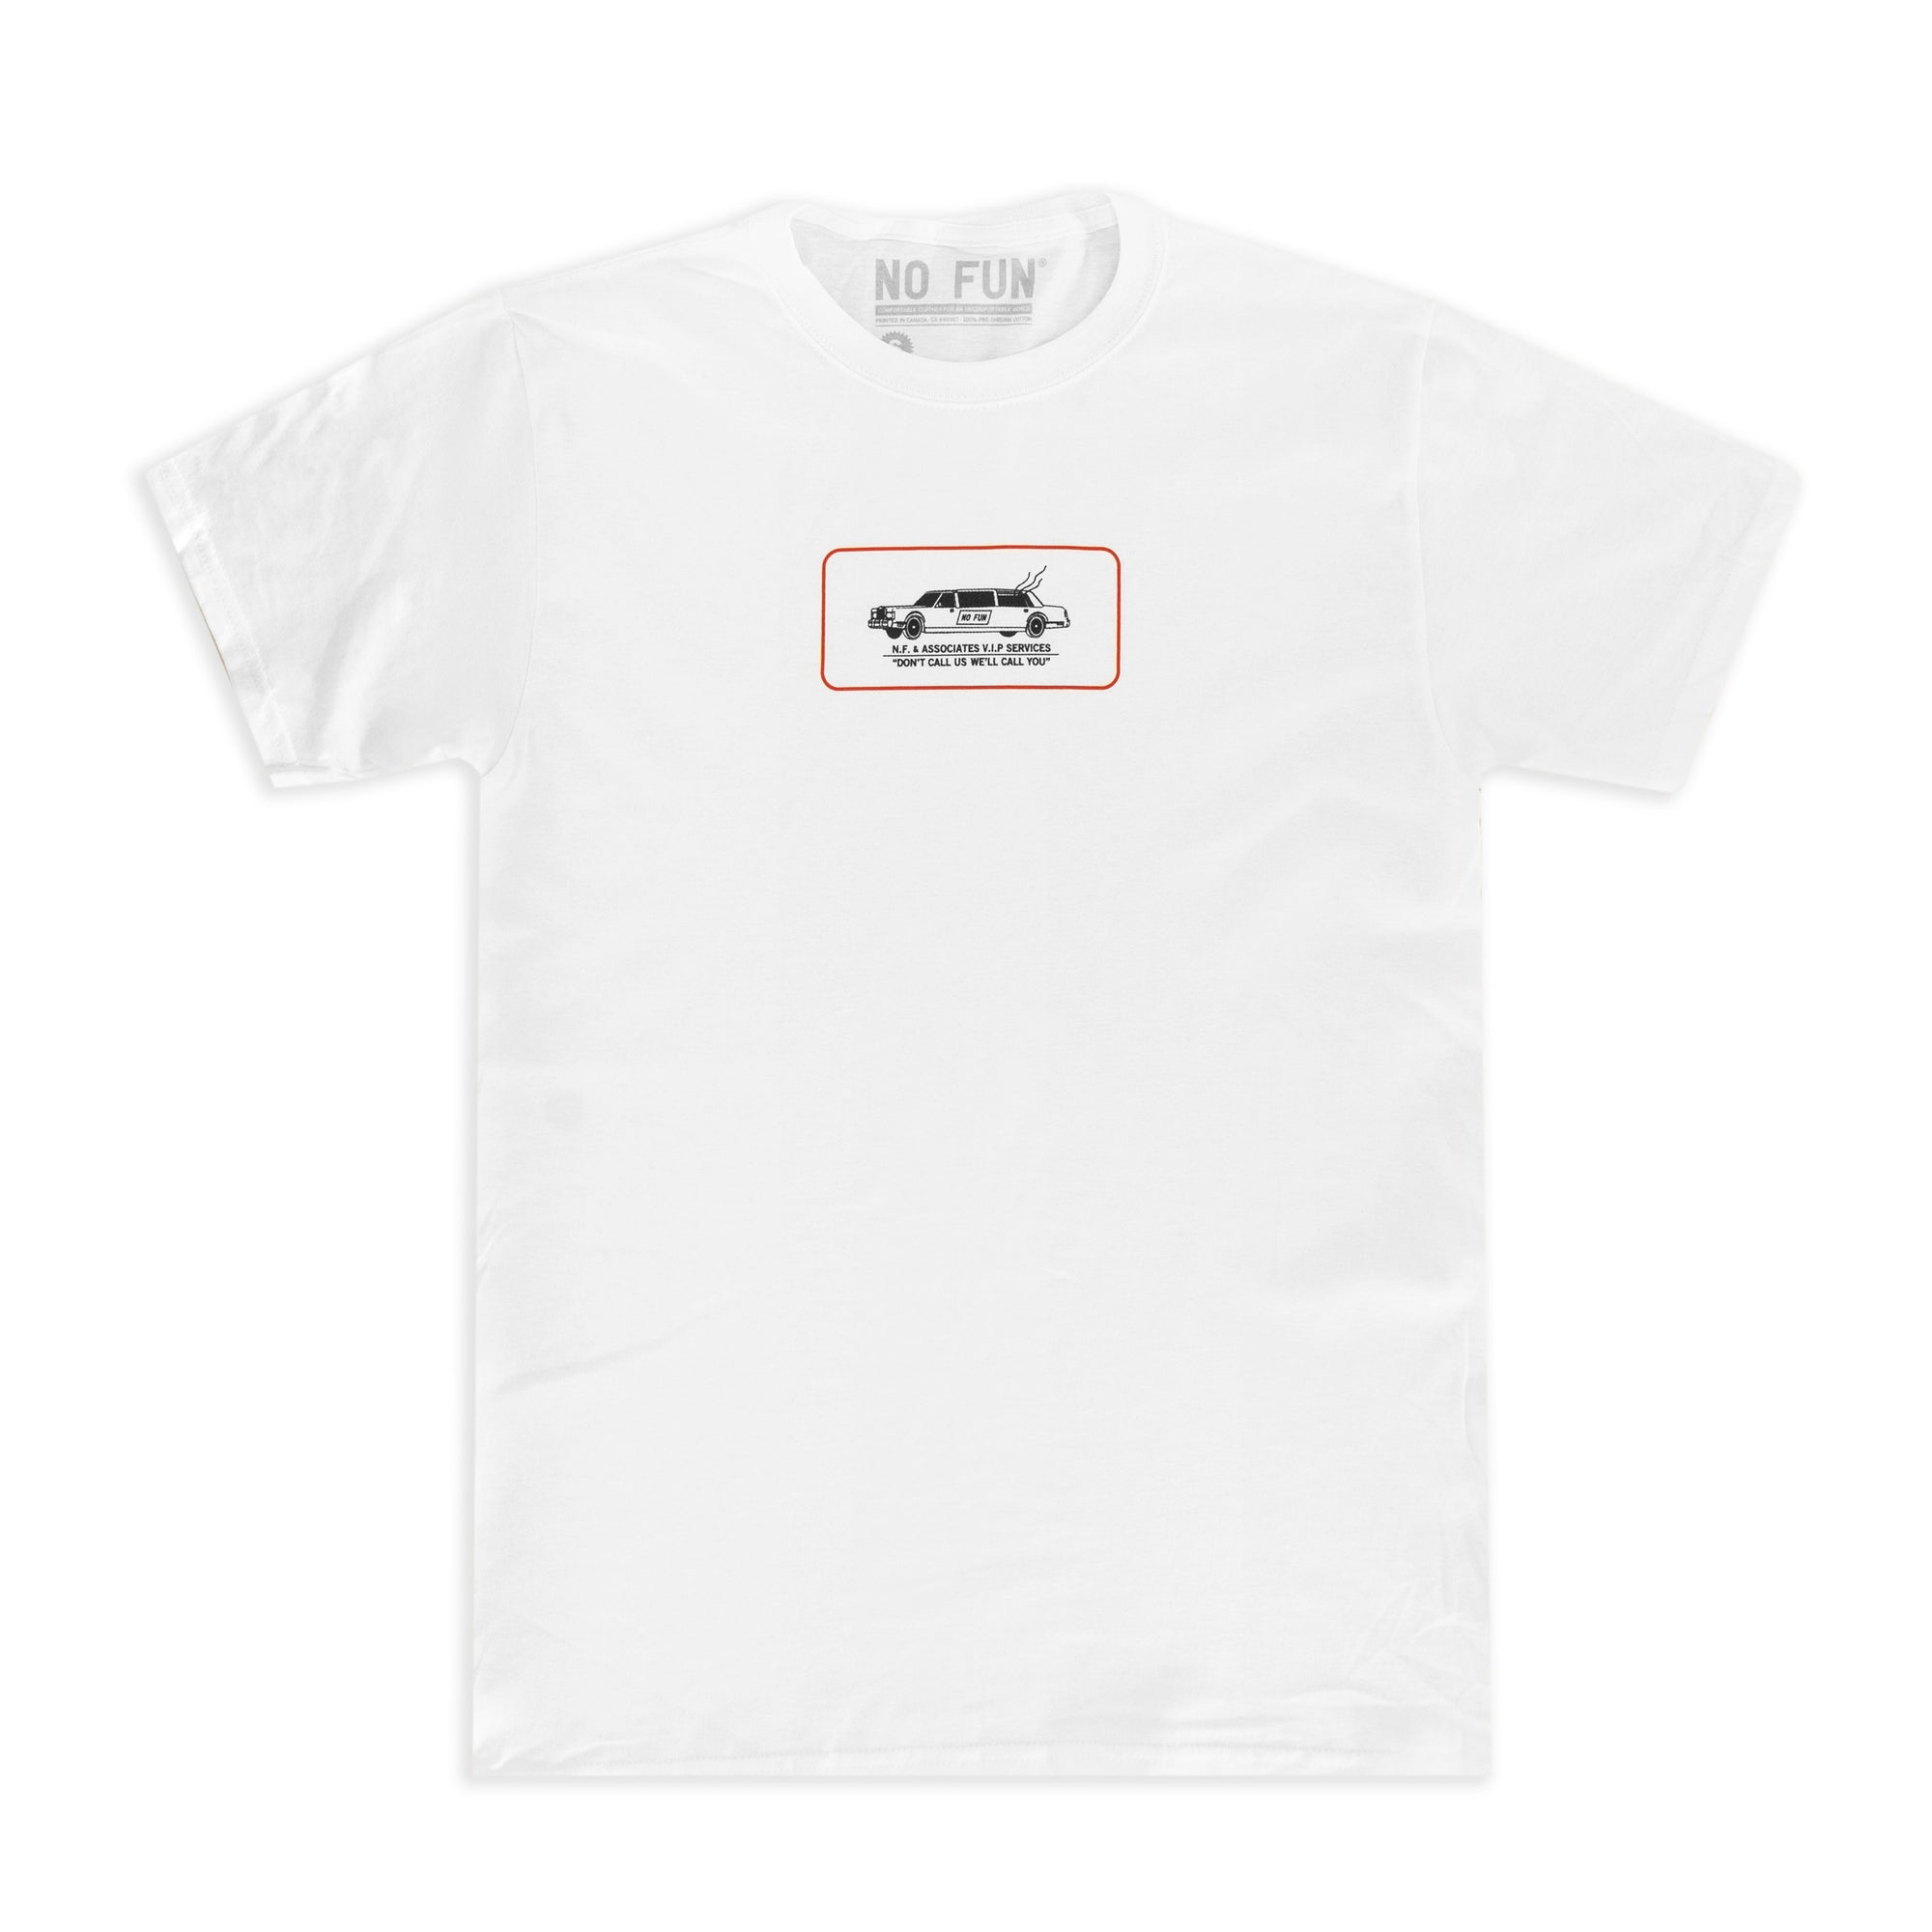 "White t-shirt with a chest print. Print is a drawing of a limo with smoke coming out of it, sized ~4"" wide. Text underneath the car says ""Don't call us, we'll call you""."